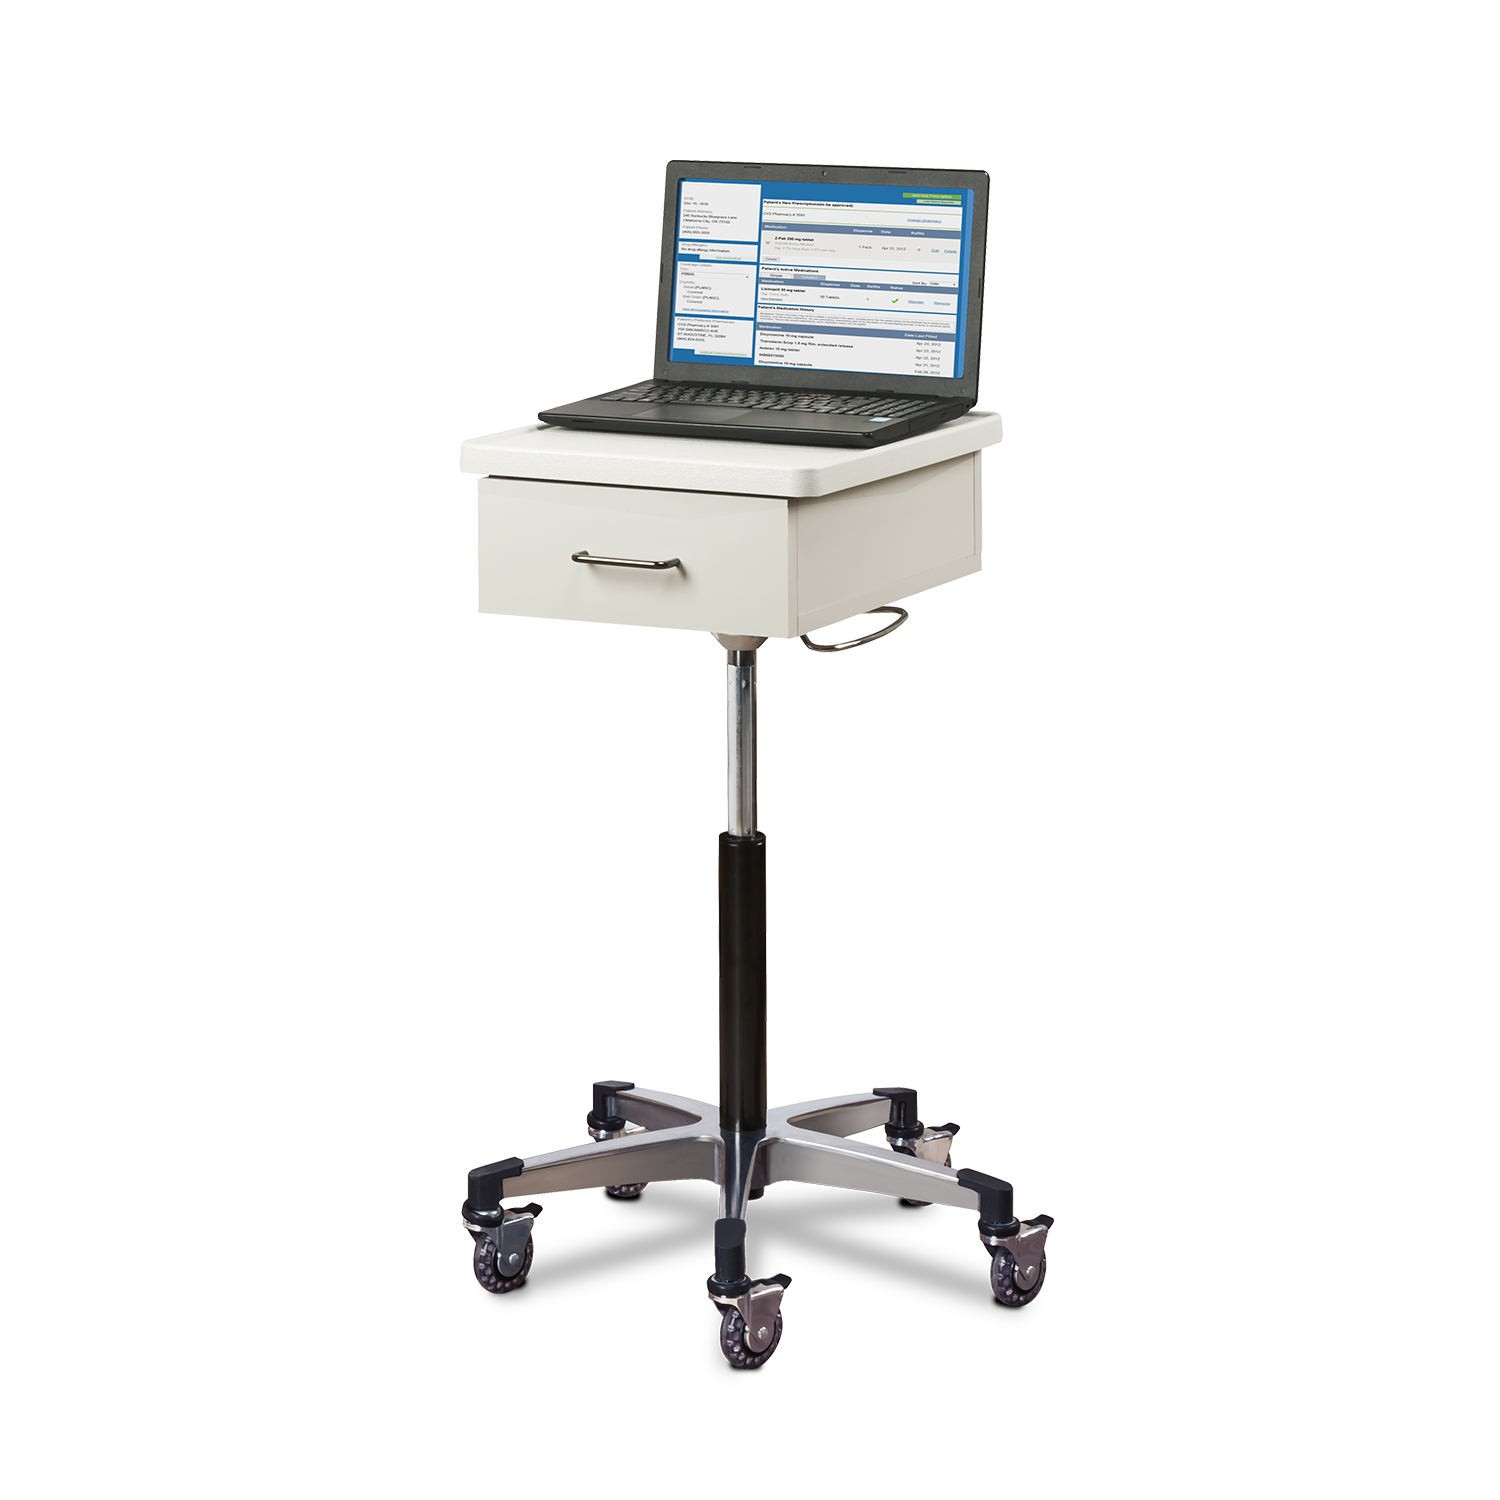 Clinton Compact, Tec-Cart™ Mobile Work Station with Drawer